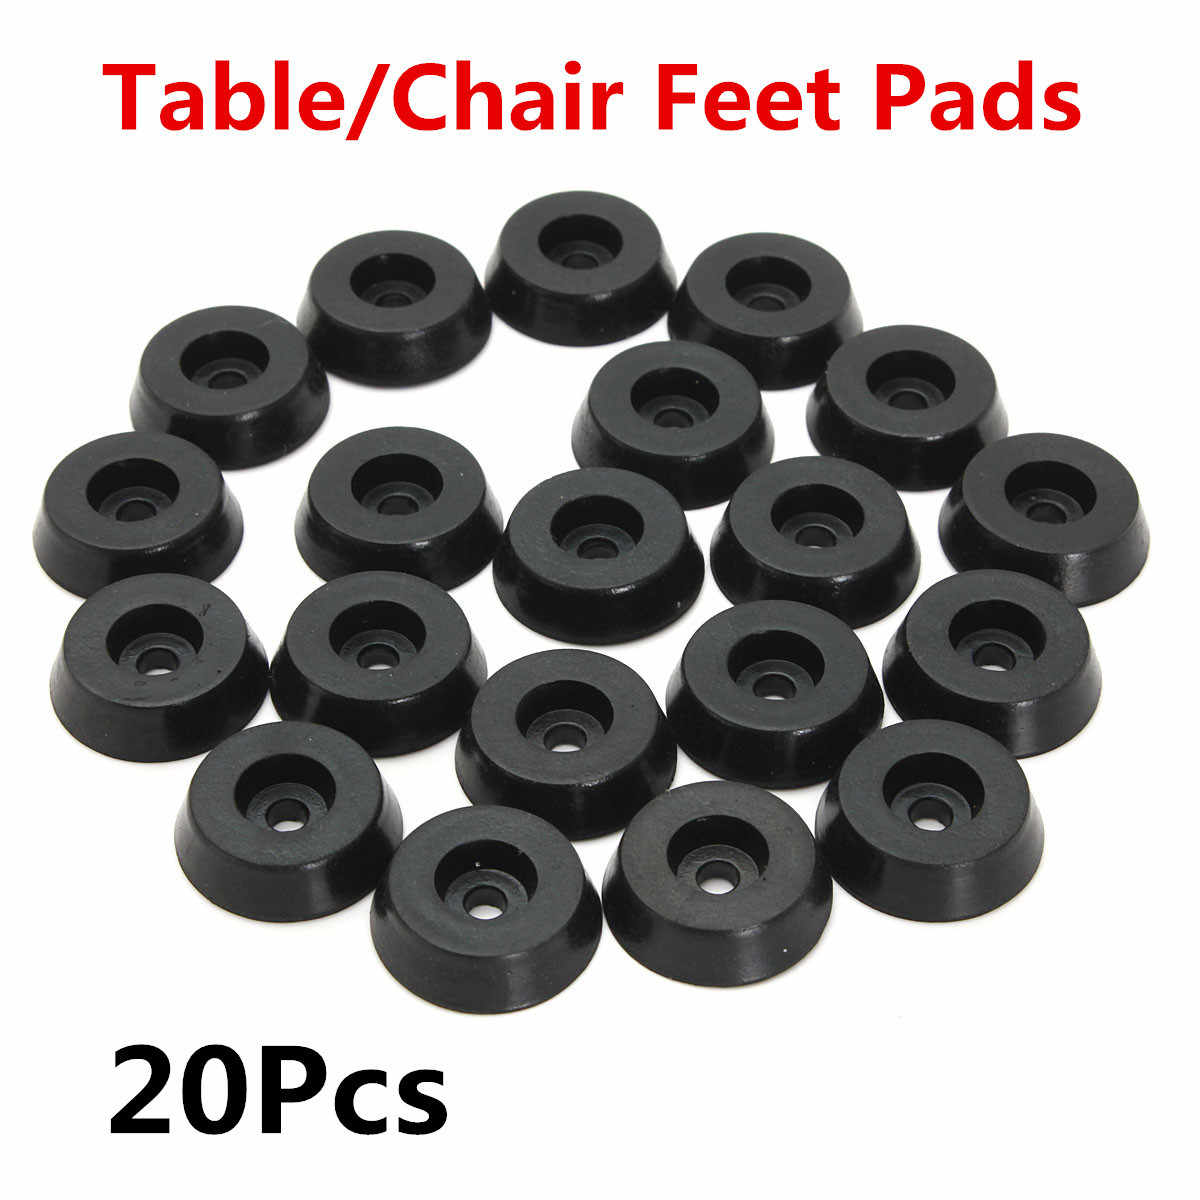 Rubber Chair Feet Cheap Lounge Cushions Detail Feedback Questions About 20pcs Table Furniture Leg Bottom Tips Pad Tile Floor Protectors Black 18x15x5mm